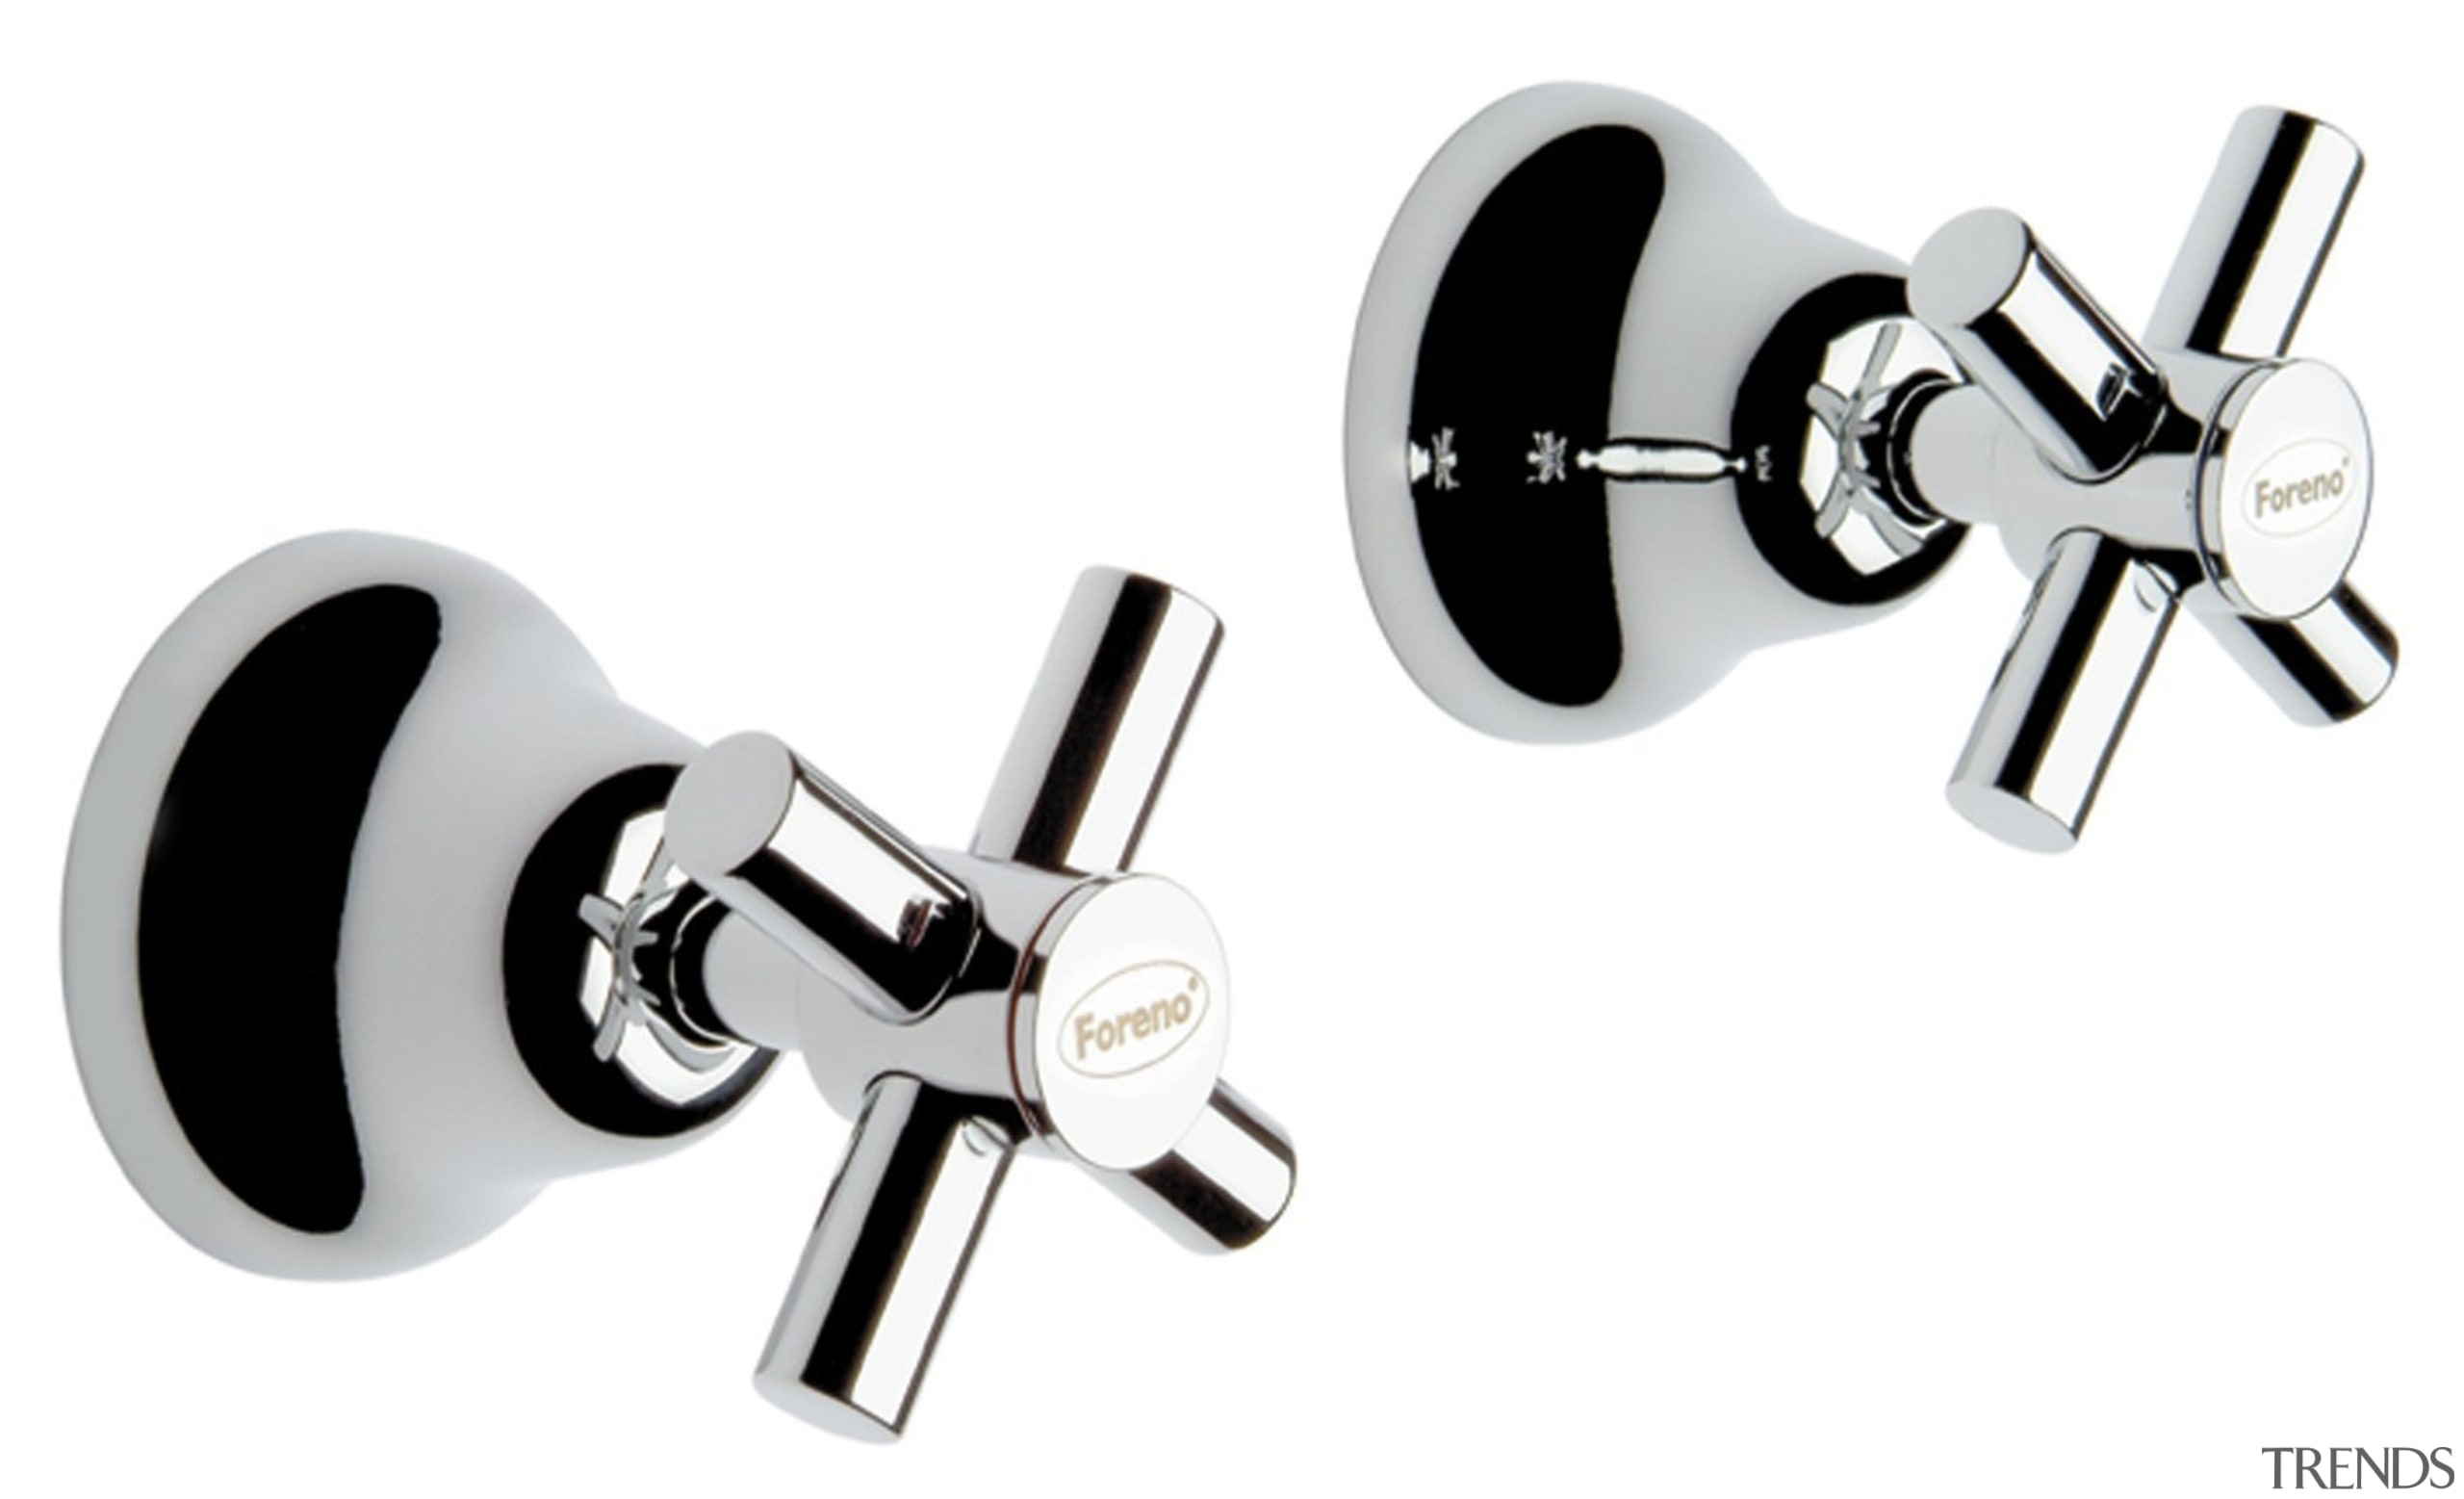 For more information, please visit www.foreno.co.nz or body jewelry, hardware accessory, product, tap, white